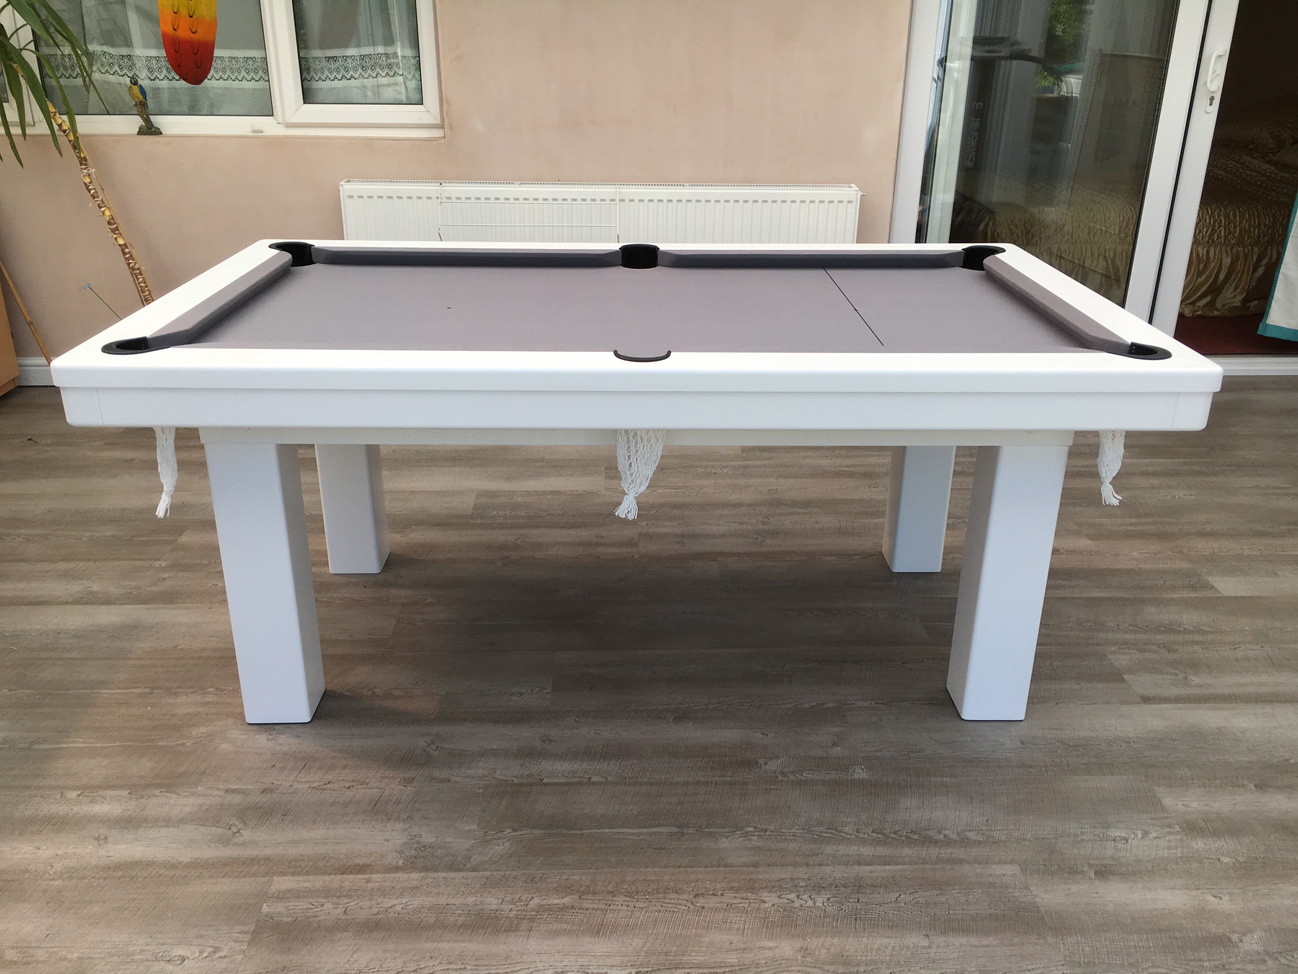 Modern 6ft Pool Dining Table in White Silver Pool  : 3132 from www.snookerandpooltablecompany.com size 1298 x 974 jpeg 366kB